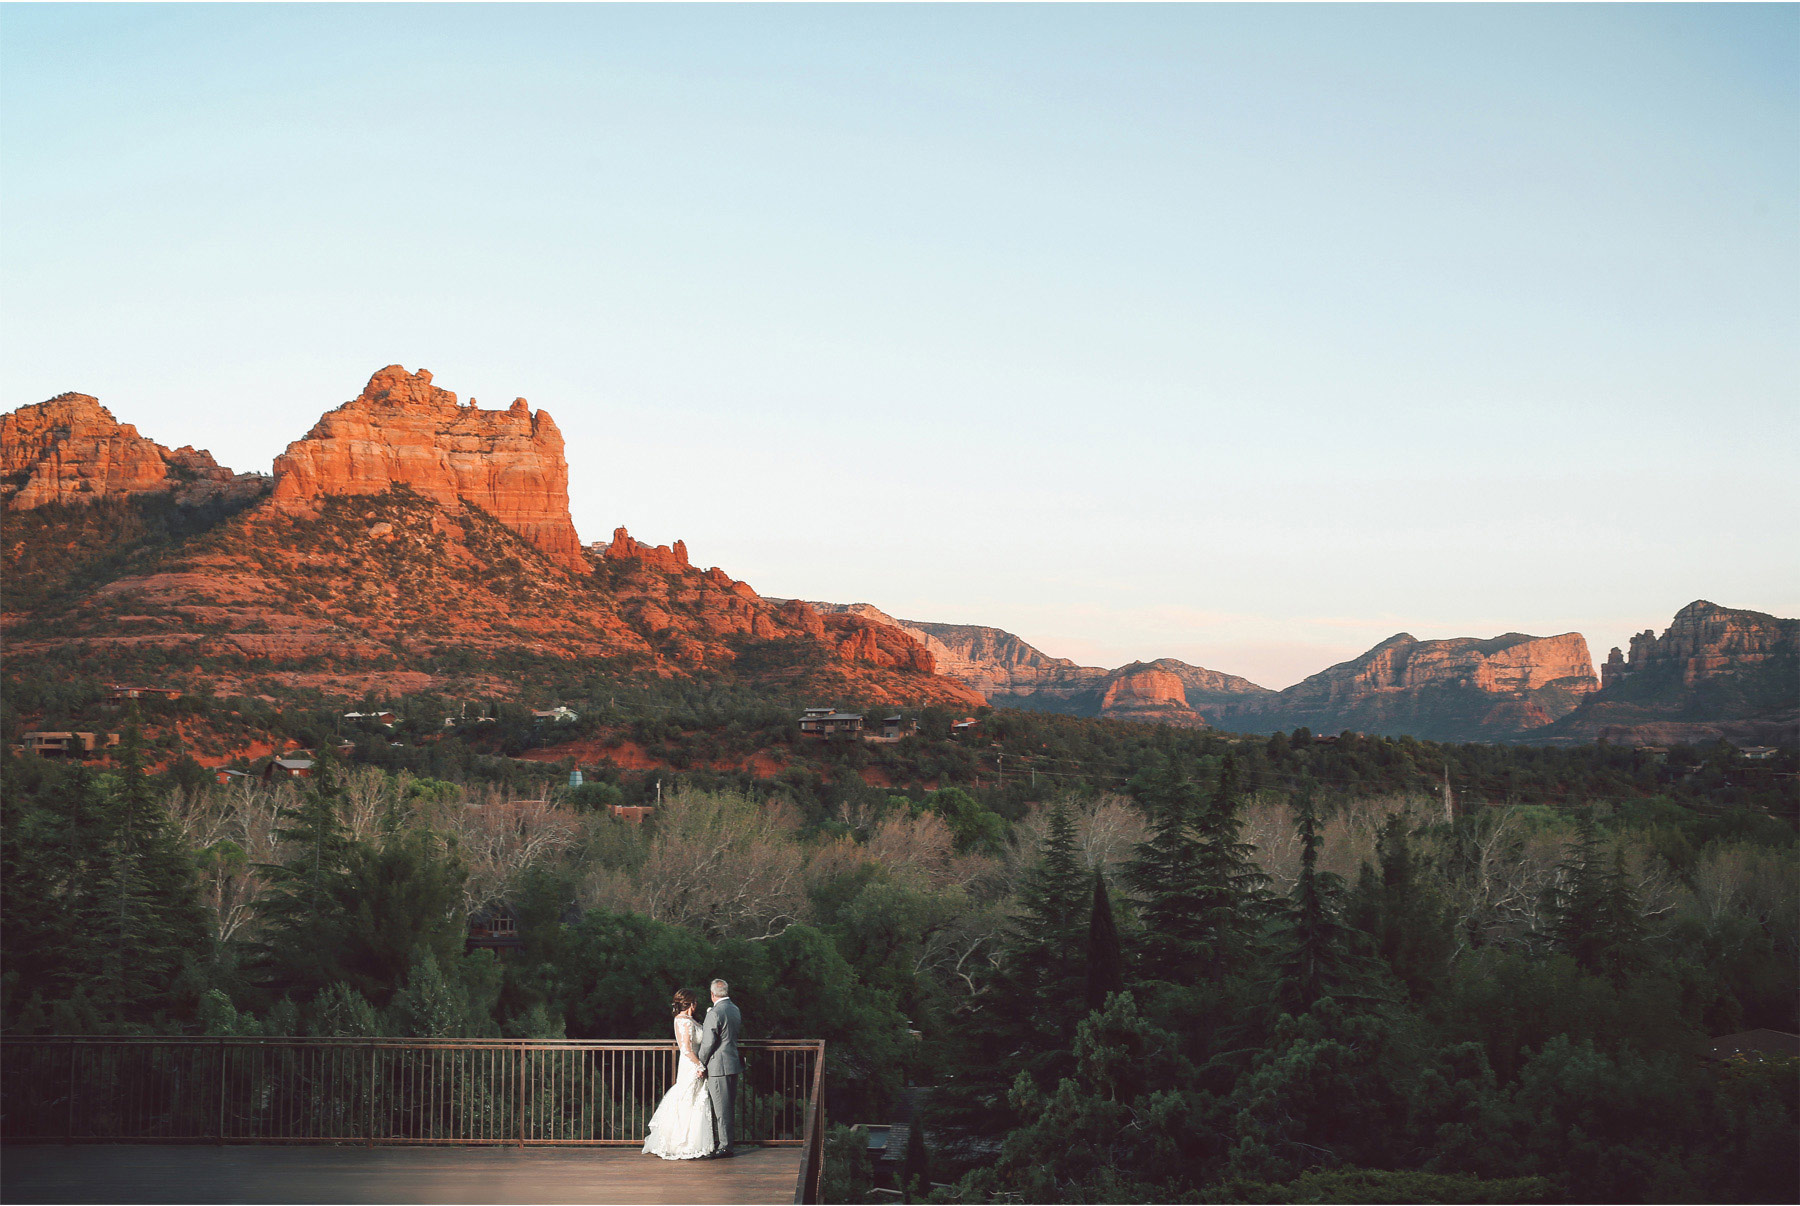 23-Sedona-Arizona-Wedding-Photographer-by-Andrew-Vick-Photography-Spring--LAuberge-de-Sedona-Resort-Reception-Garden-Lawn-Bride-Groom-Deck-Mountains-Embrace-Vintage-Barbara-and-Mike.jpg